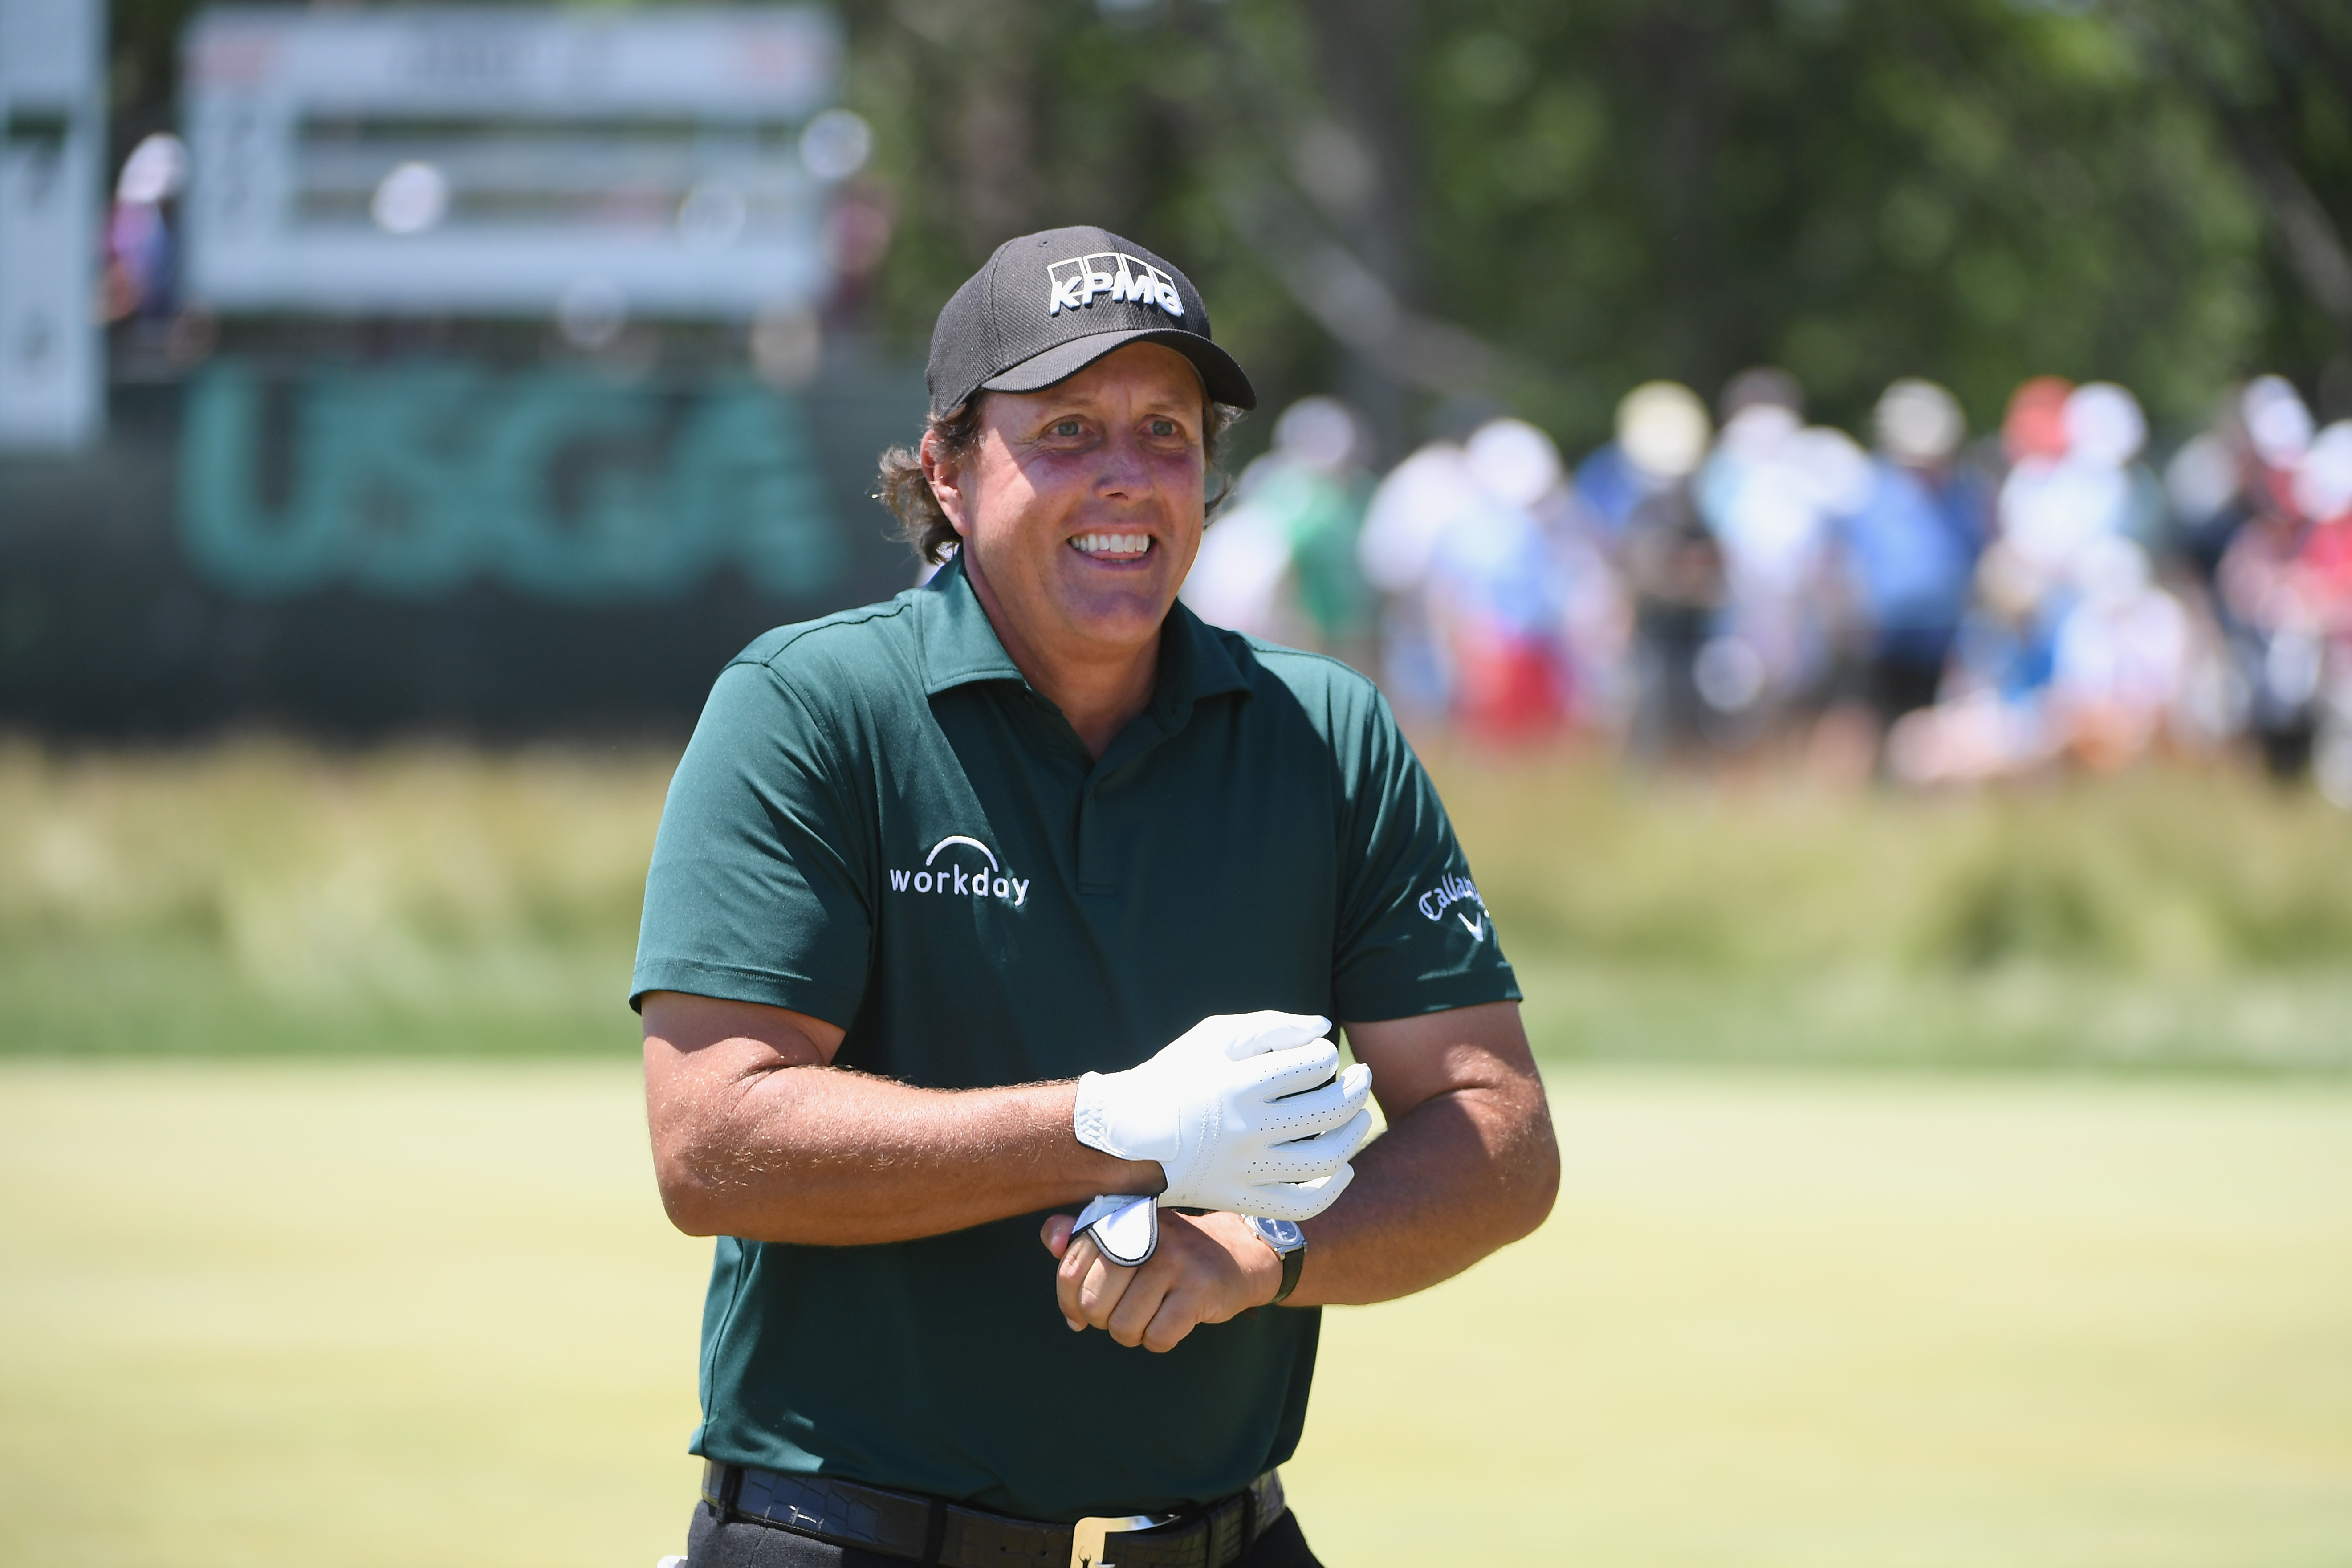 Mickelson 'embarrassed and disappointed'; apologises for moving ball incident at US Open